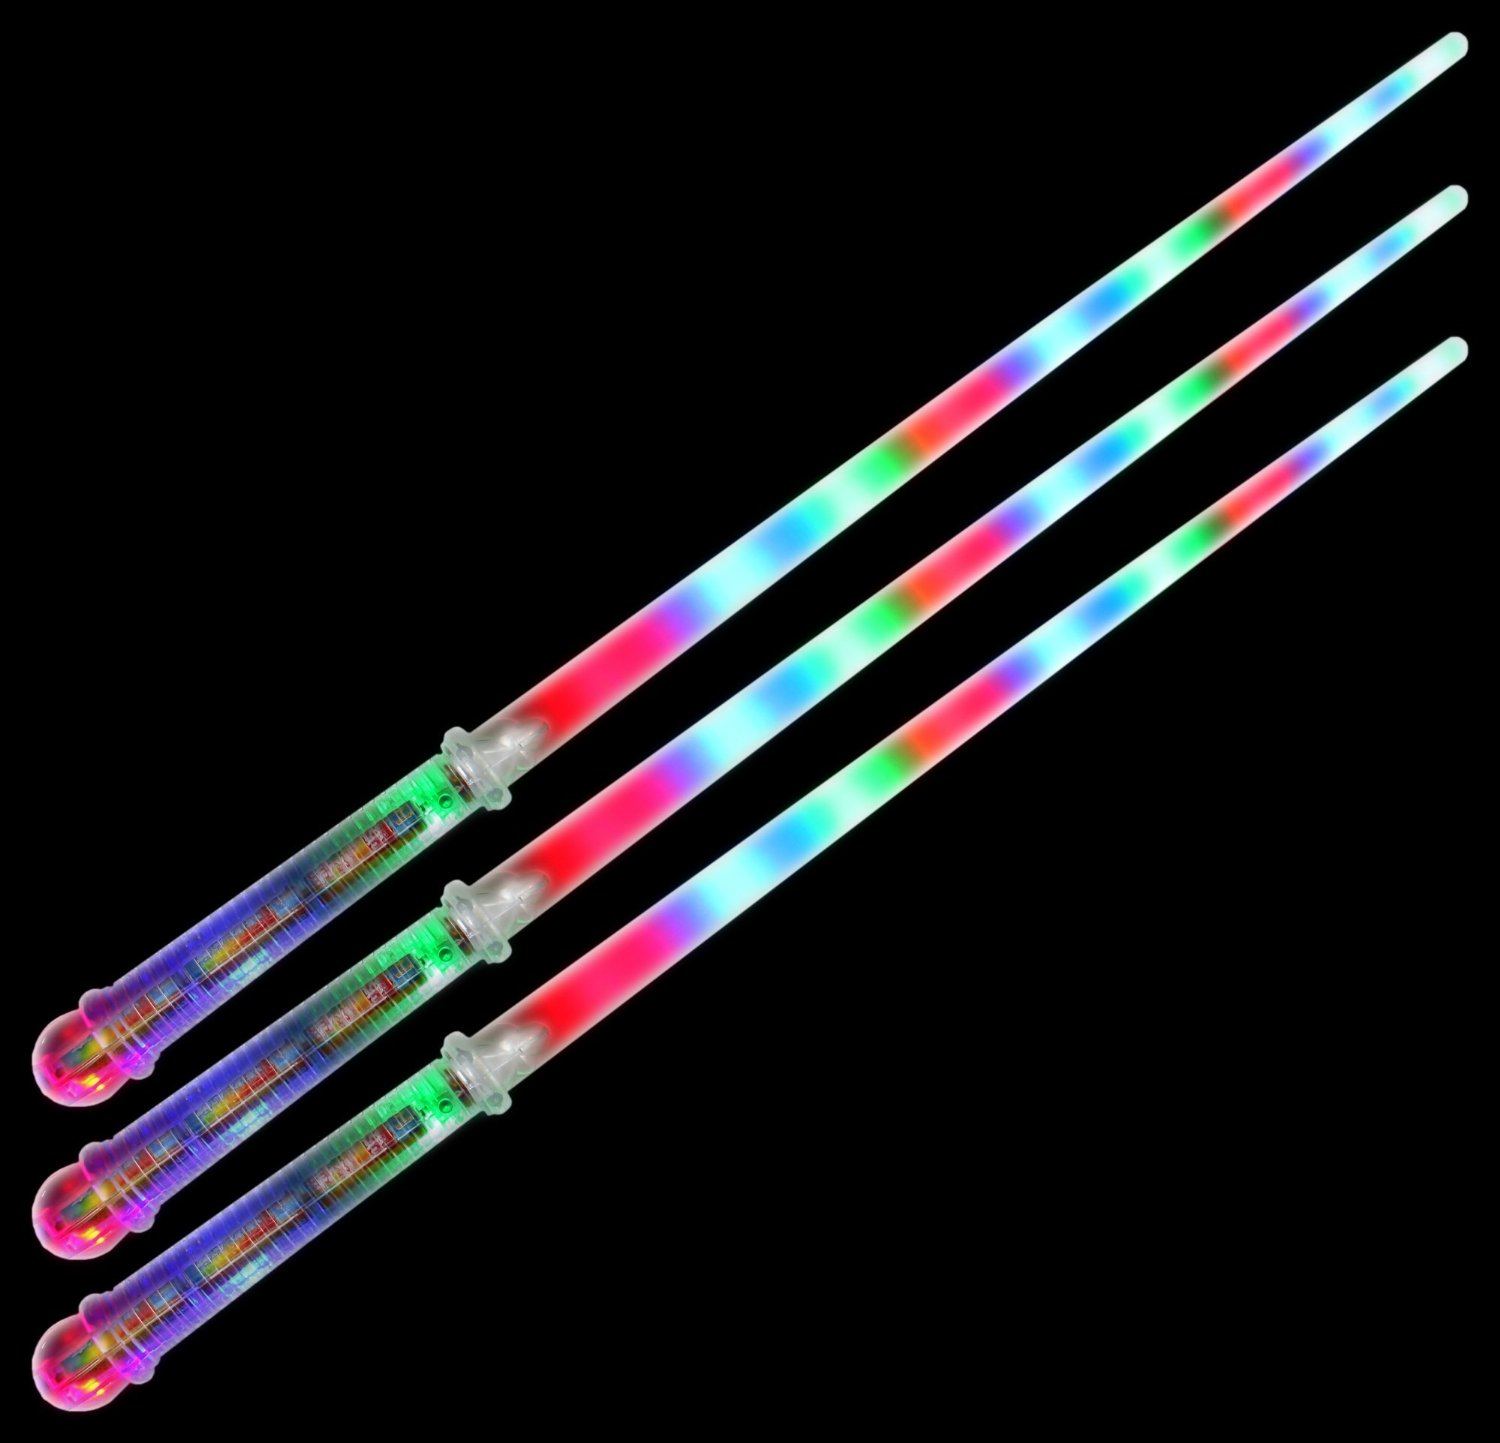 Set of 3 VT Clear Star Flashing LED Light Up Party Favor Toy Light Sword Sabers